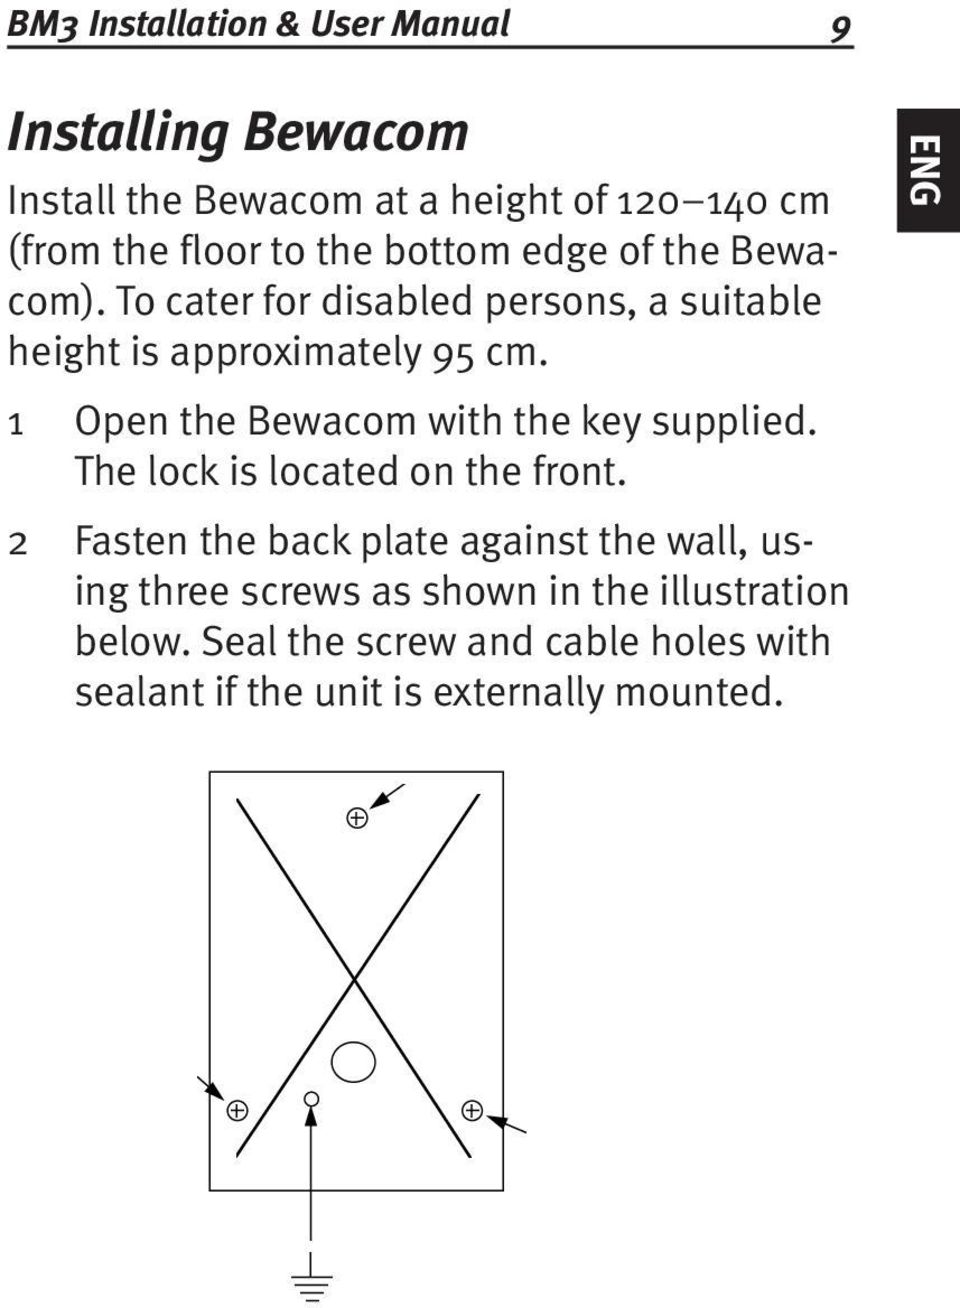 Open the Bewacom with the key supplied. The lock is located on the front.